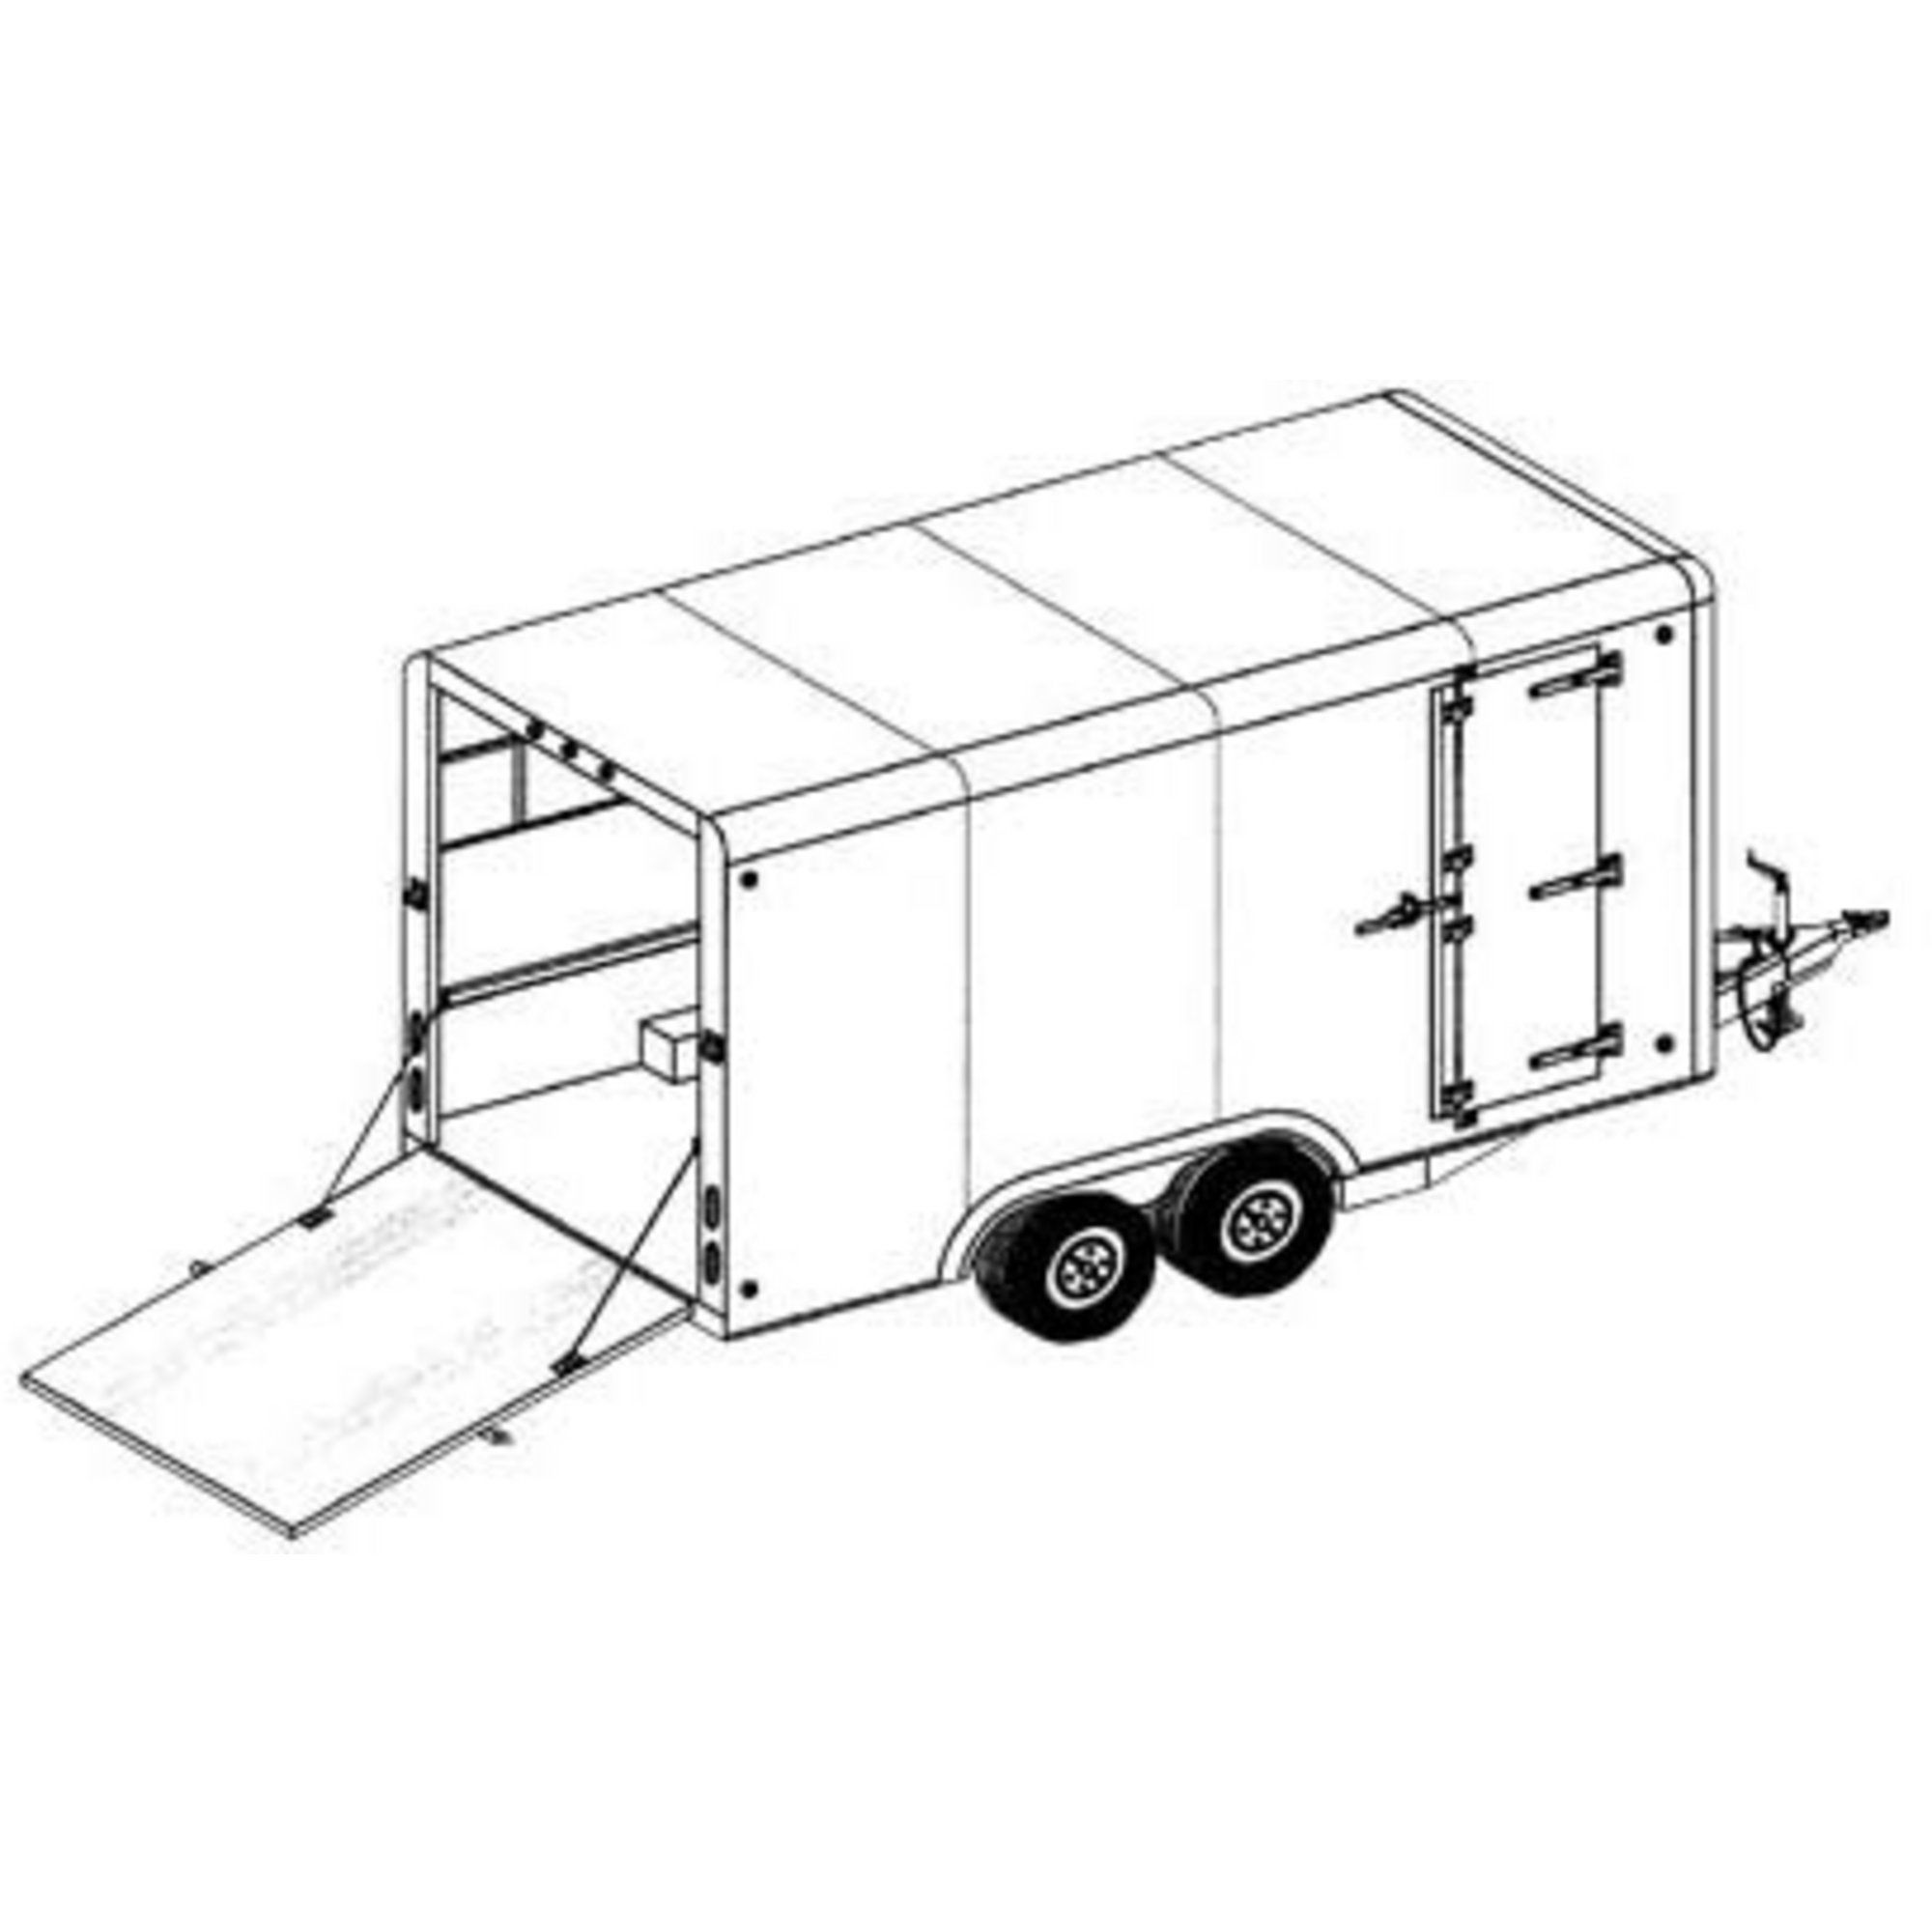 Covered Cargo Tandem Axle Trailer Blueprints in 2020